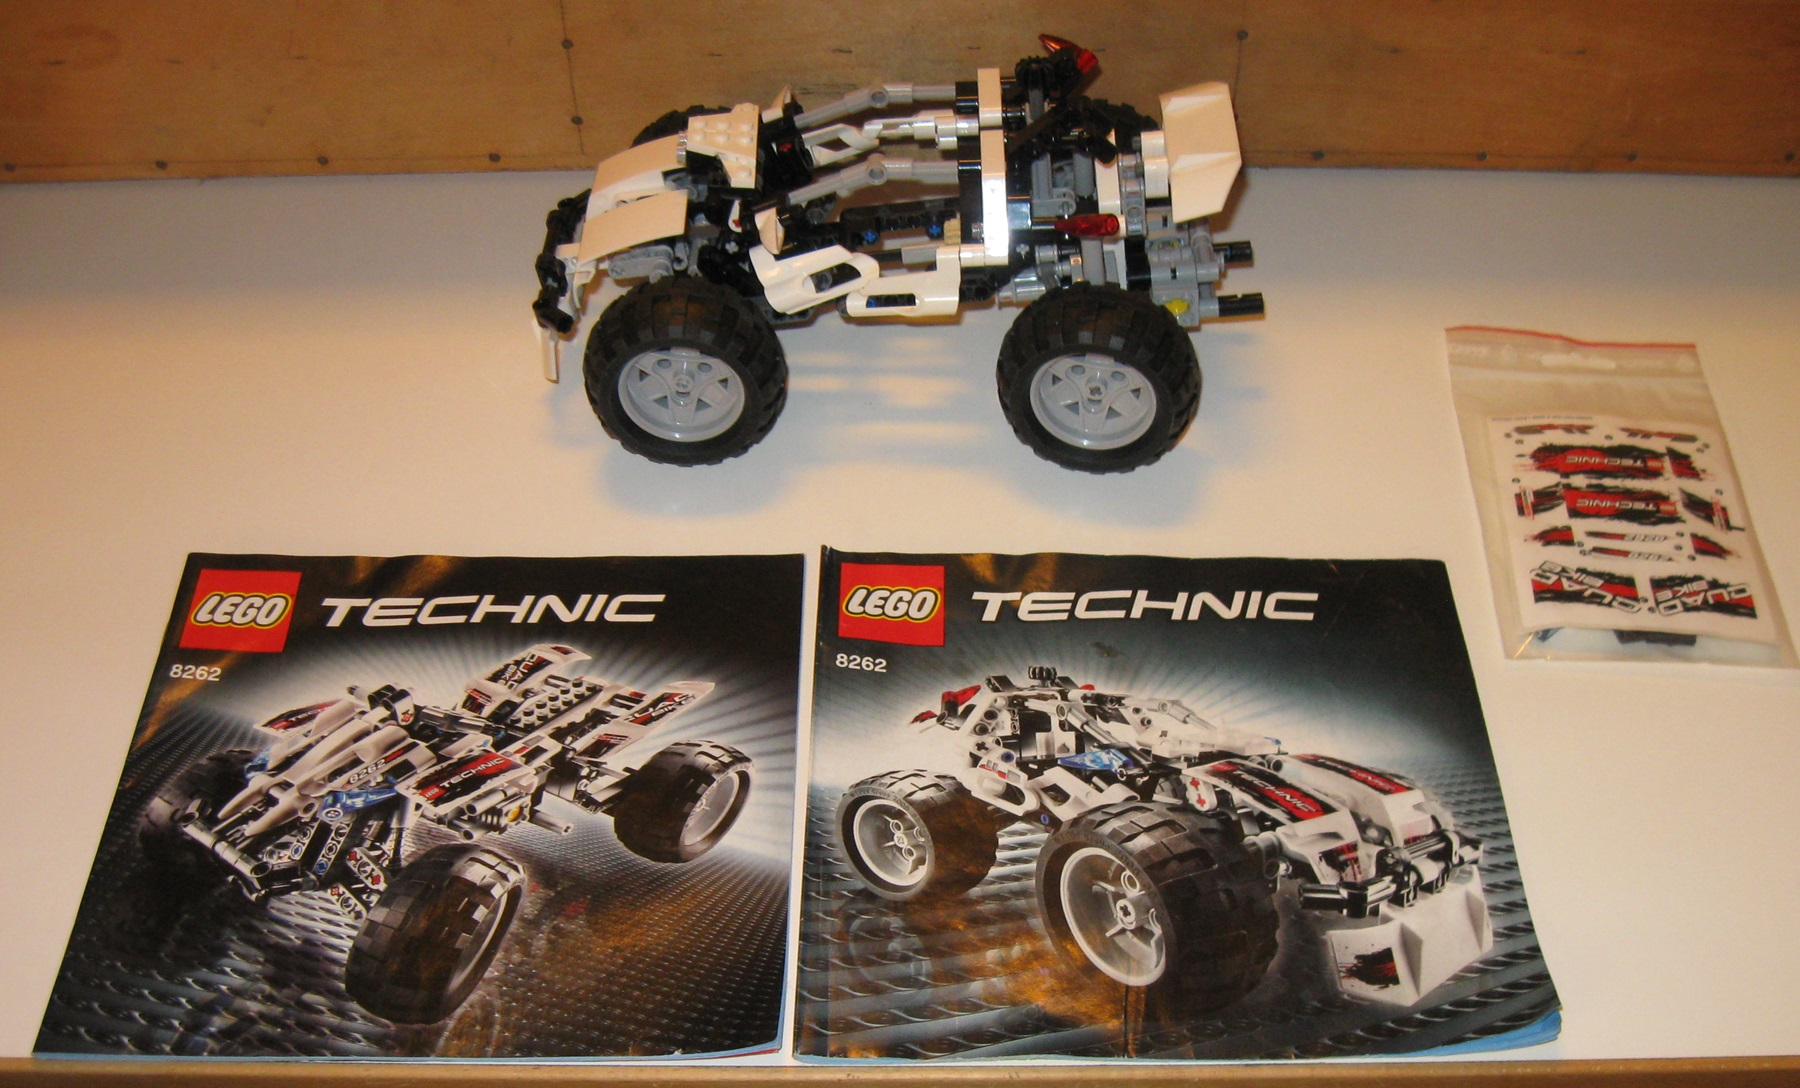 0010 Lego technic Quad bike 8262